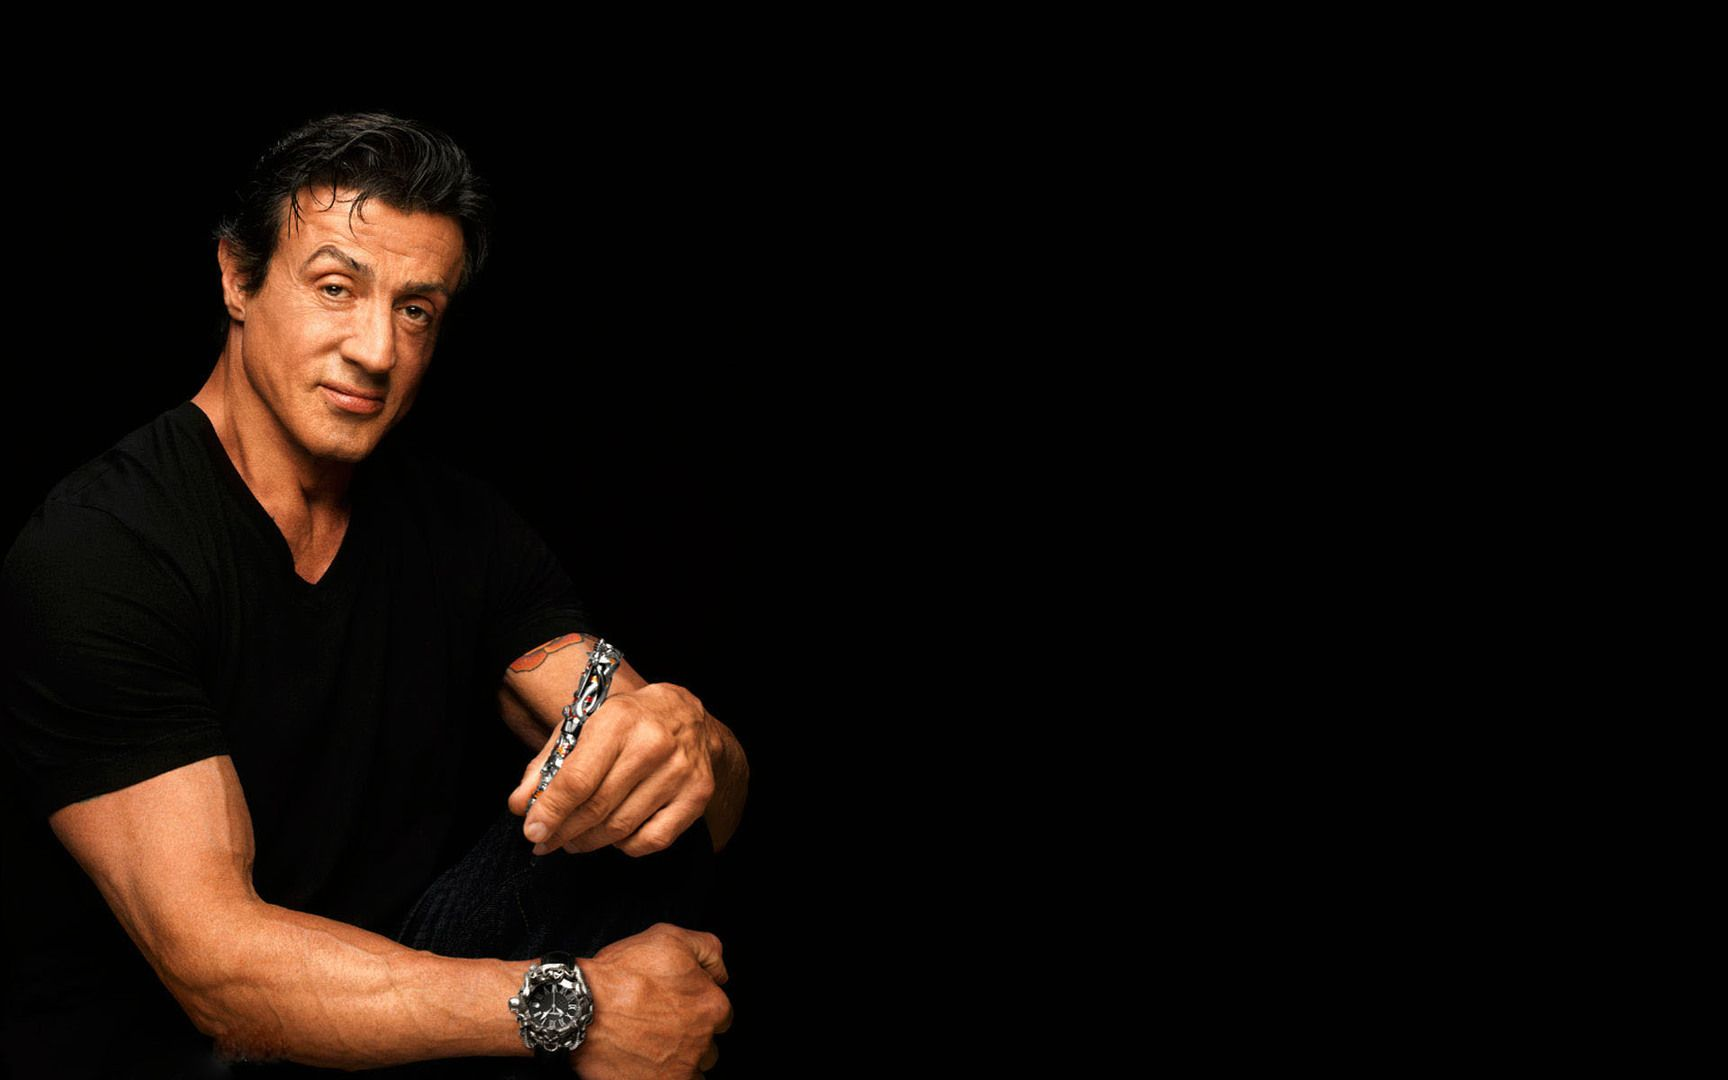 sylvester stallone quotes wallpaper hd wallpaper | wallpapers